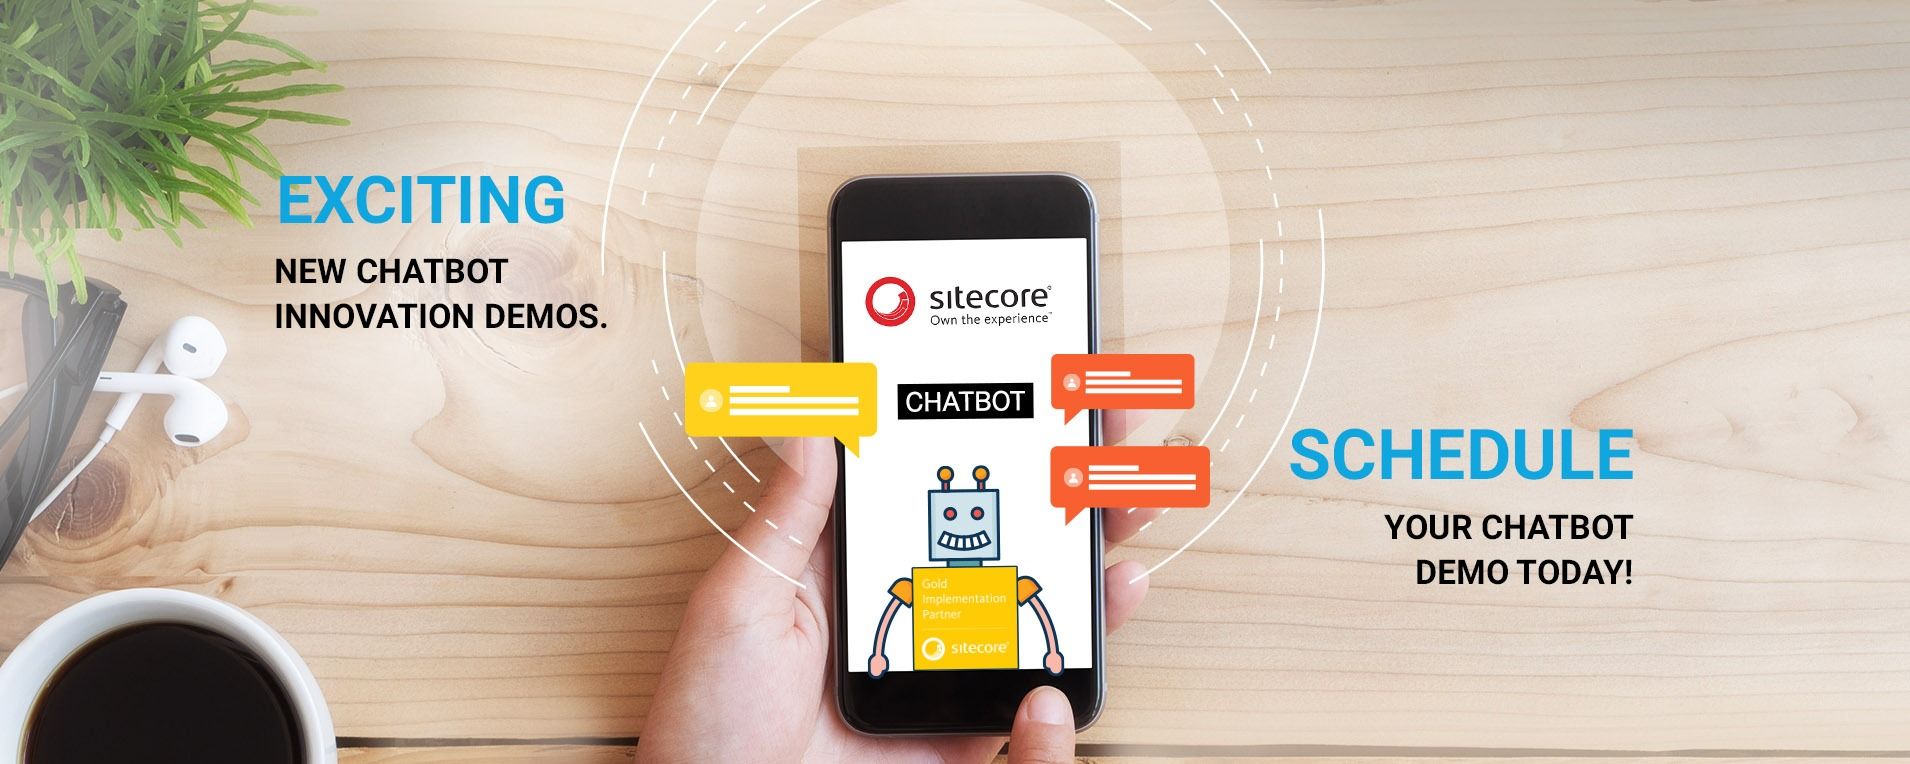 Experience Our Sitecore Chatbot Innovation Demos and more…